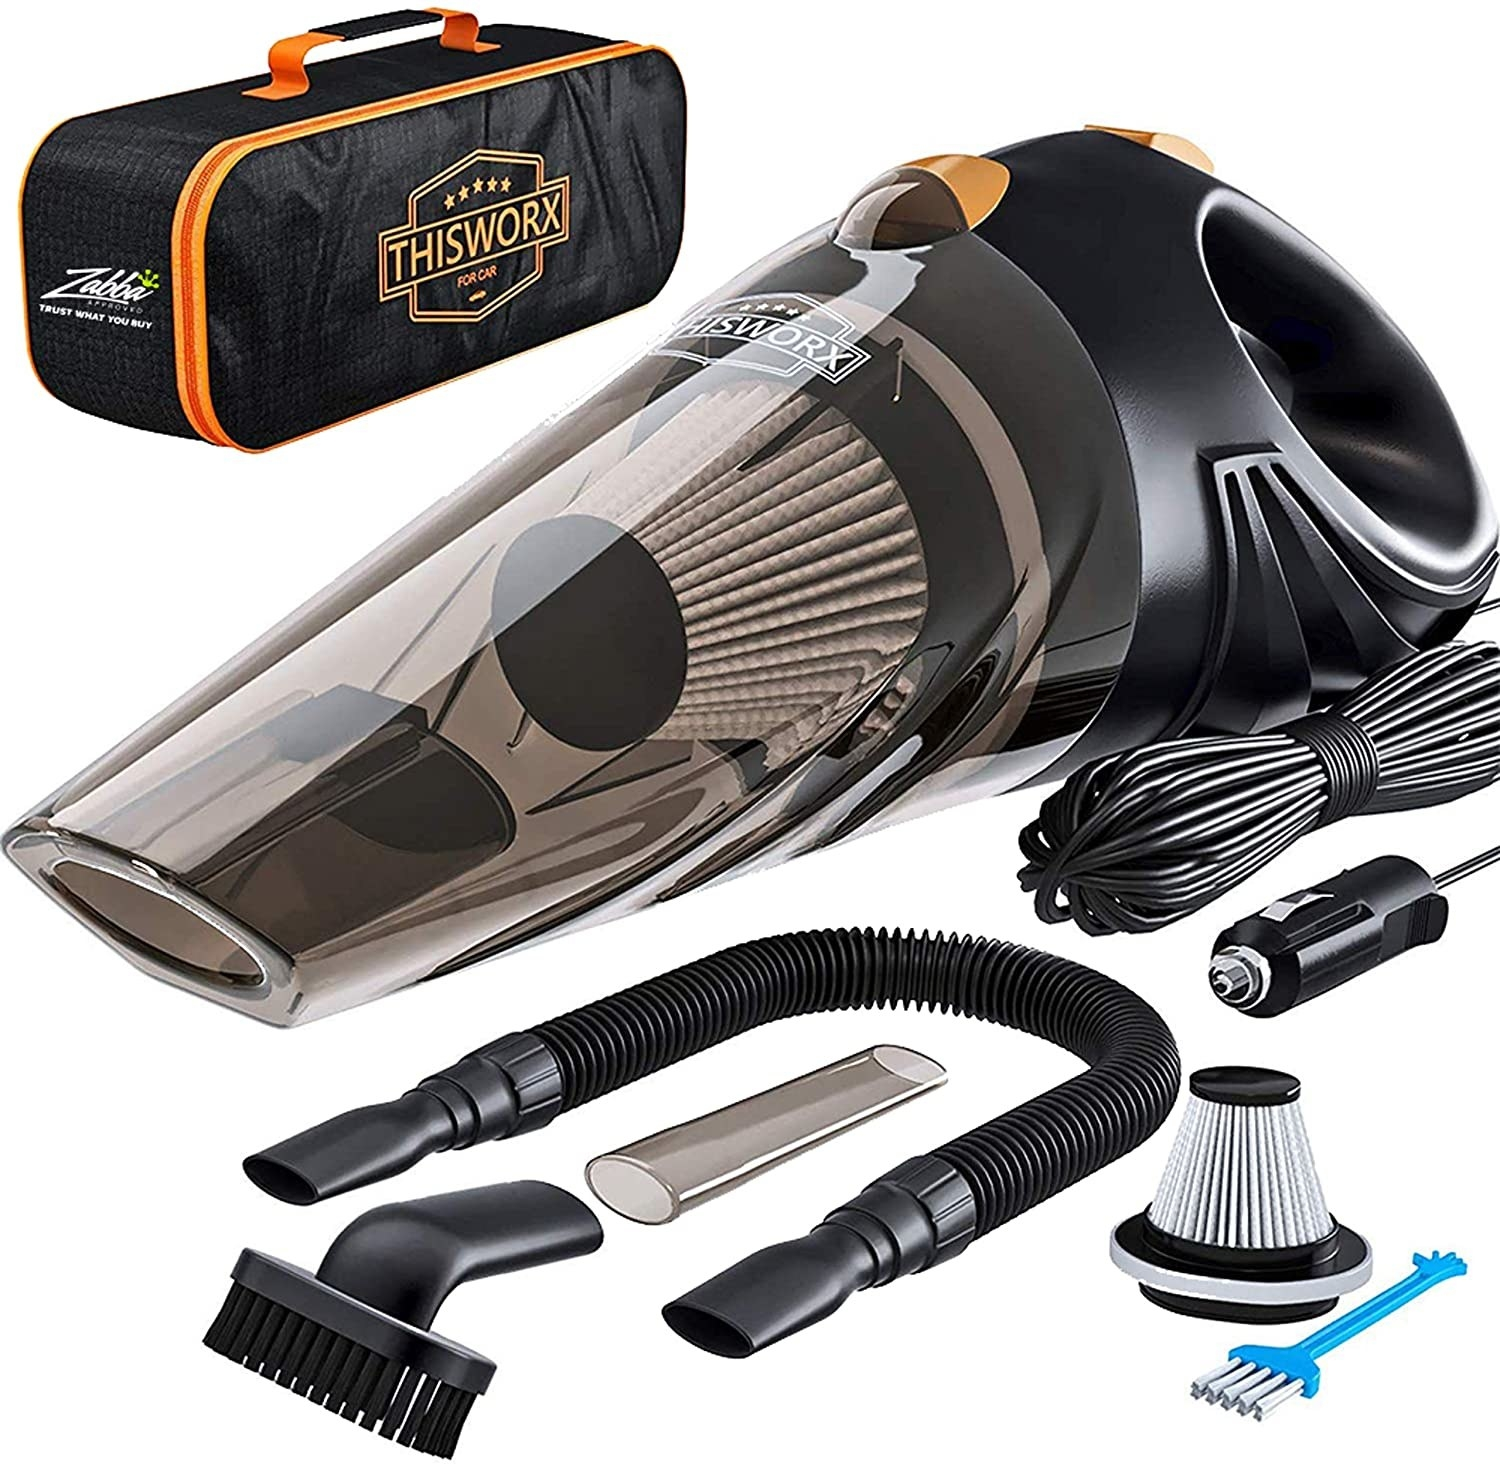 A car vacuum kit that includes a handheld vacuum, a storage bag, and various attachments, plugs, and filters